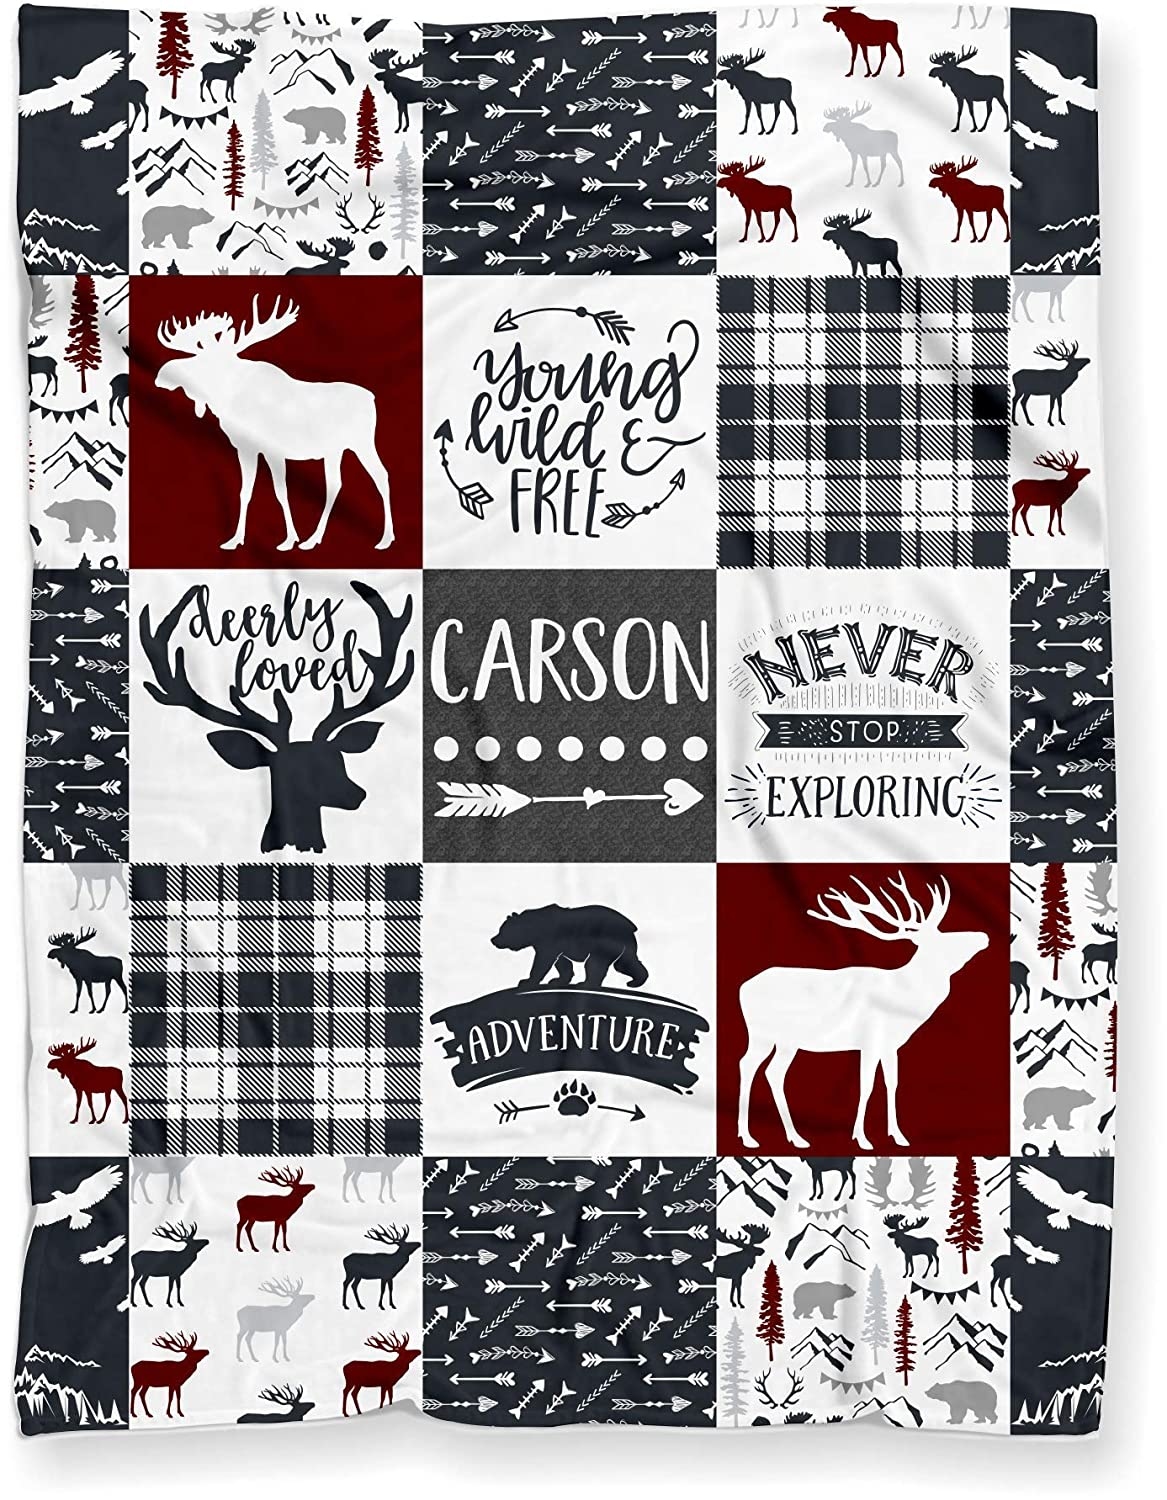 Woodland themed moose and deer flannel stroller sized baby blanket